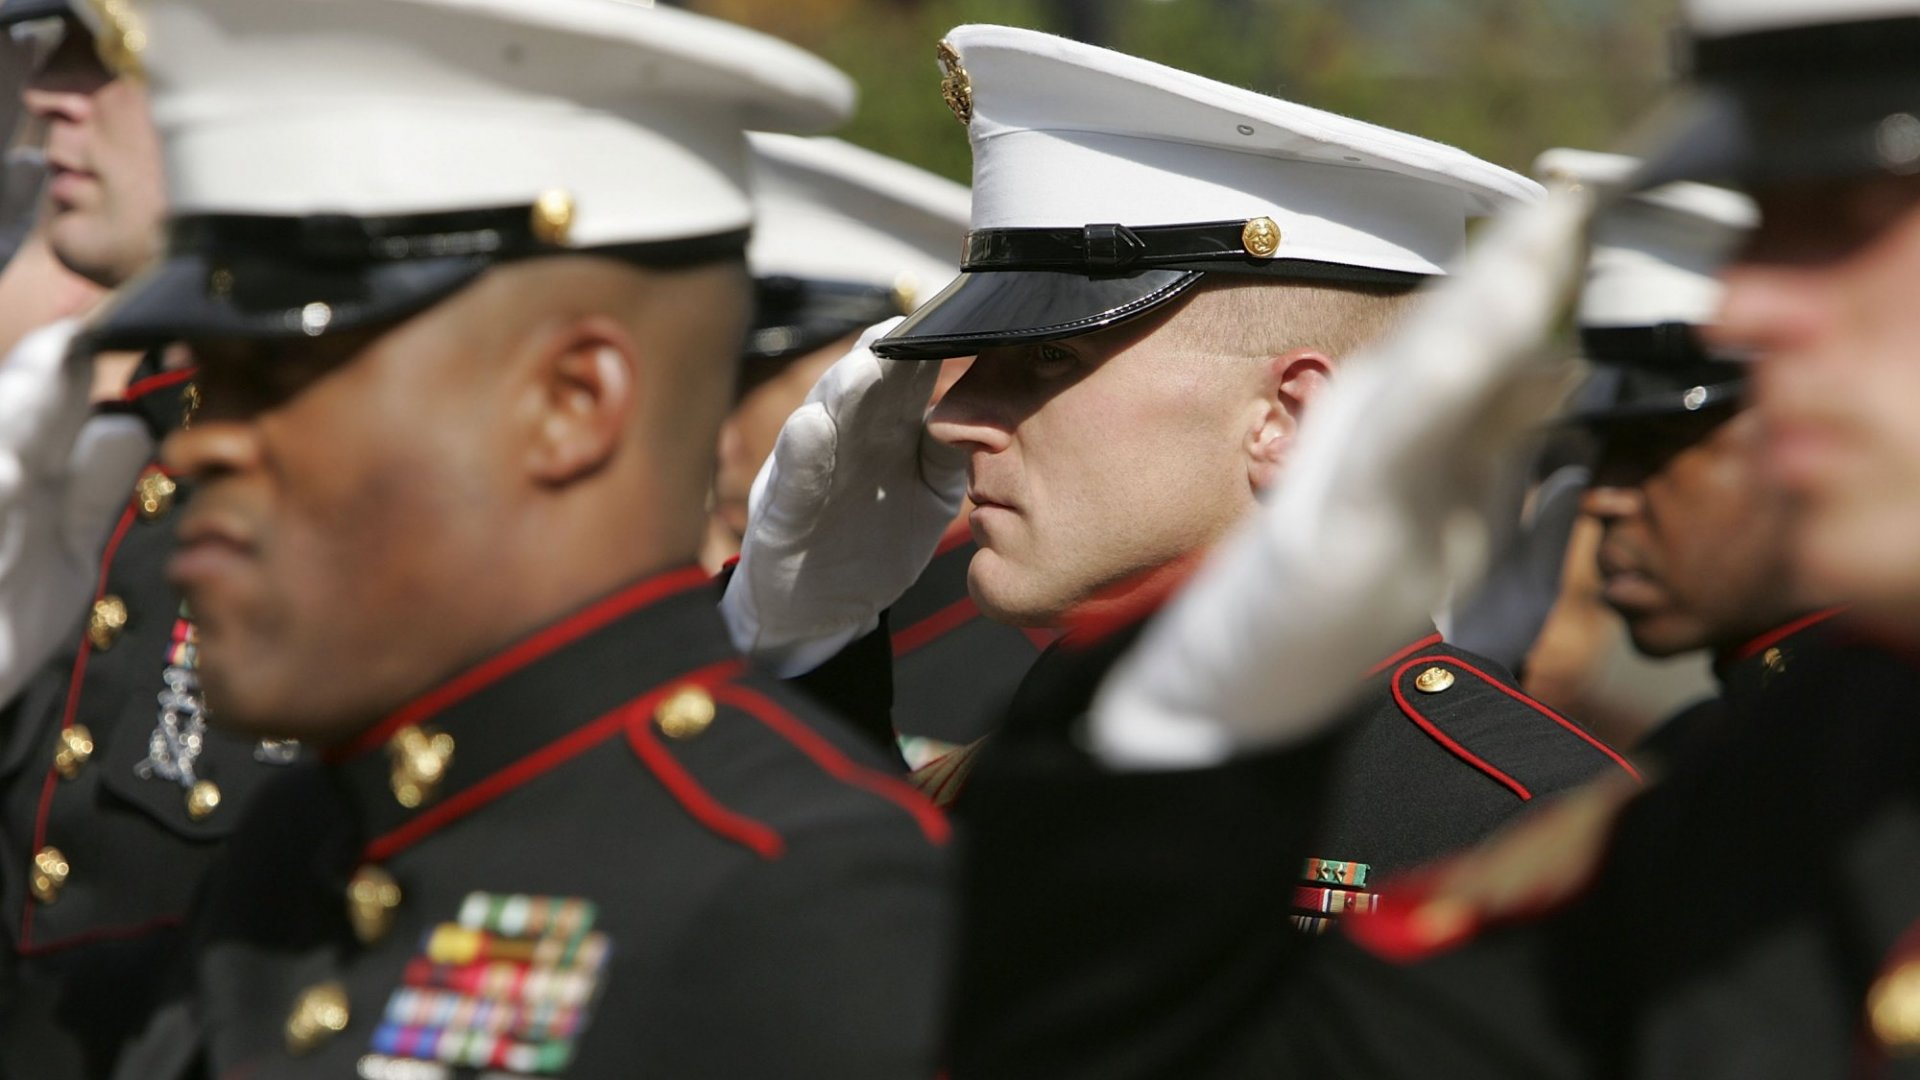 The U.S. Marine Corps Uses the Rule of 3 to Organize Almost Everything. Here's How Learning It 21 Years Ago Changed My Life